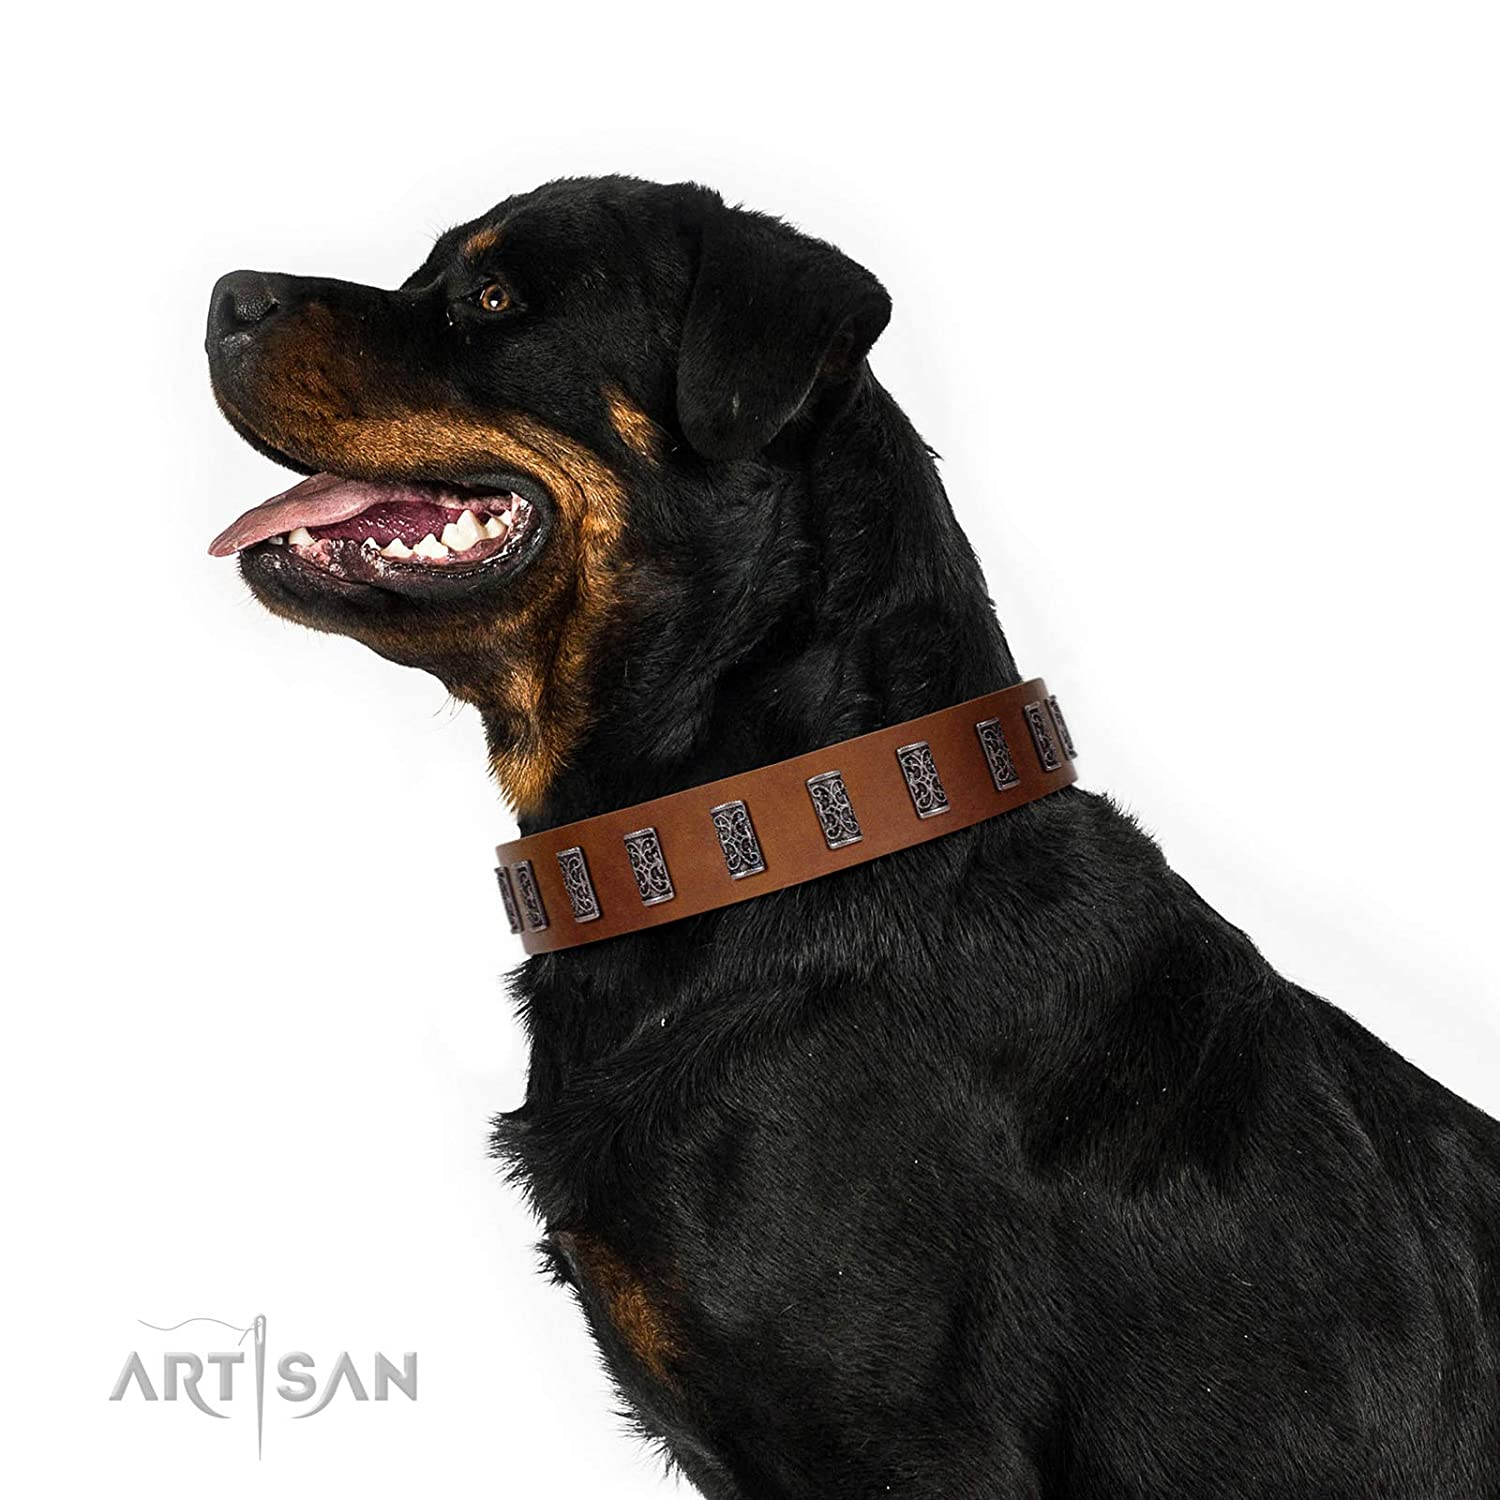 Fits for 29 inch (73cm) dog's neck size FDT Artisan 29 inch Silver Century Handcrafted Tan Leather Dog Collar 1 1 2 inch (40 mm) Wide Gift Box Included